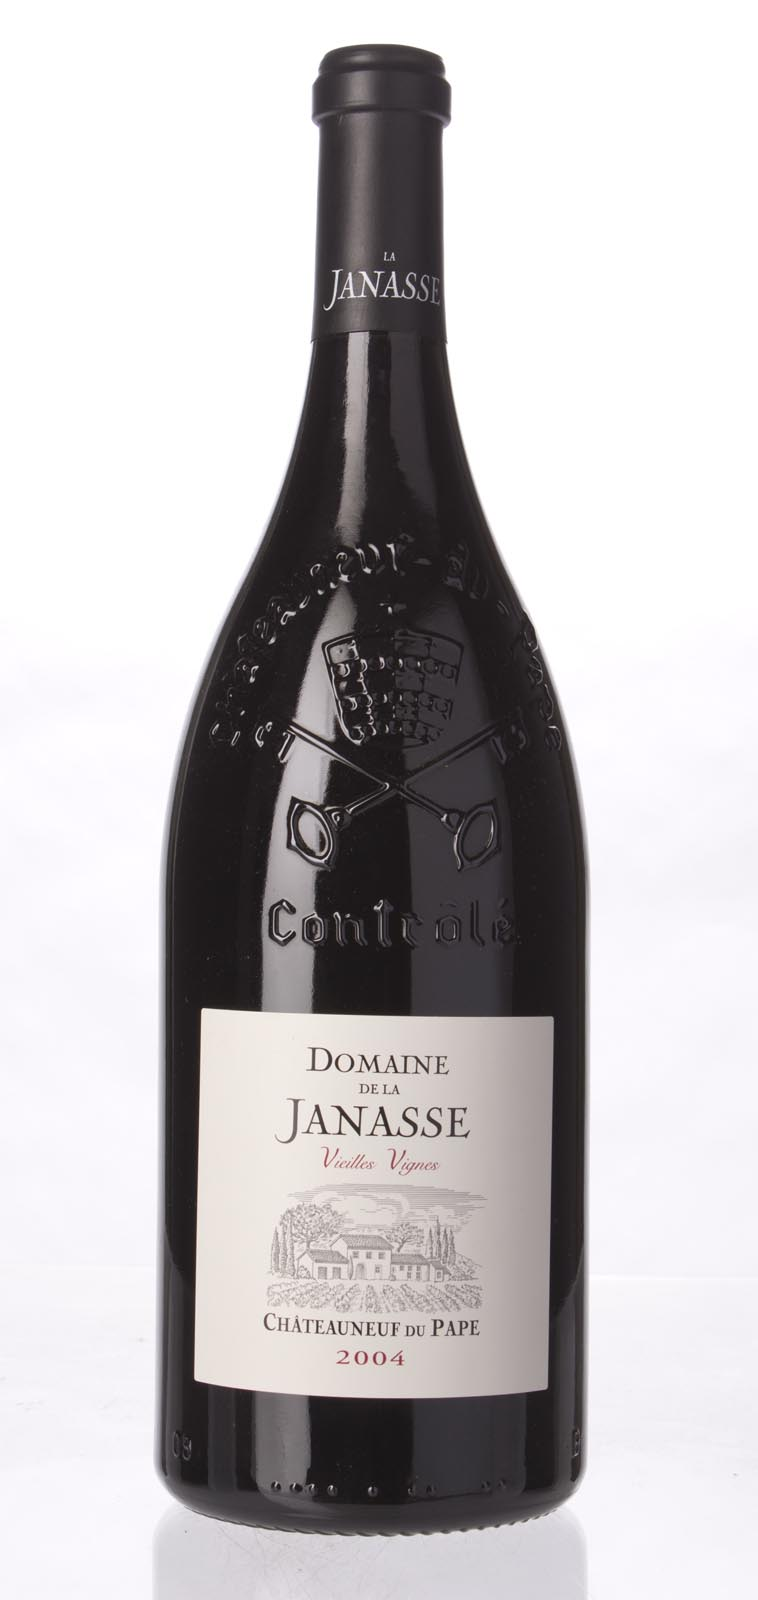 Domaine de la Janasse Chateauneuf du Pape Cuvee Vieilles Vignes 2004, 1.5L (WA93, ST95, WS94) from The BPW - Merchants of rare and fine wines.